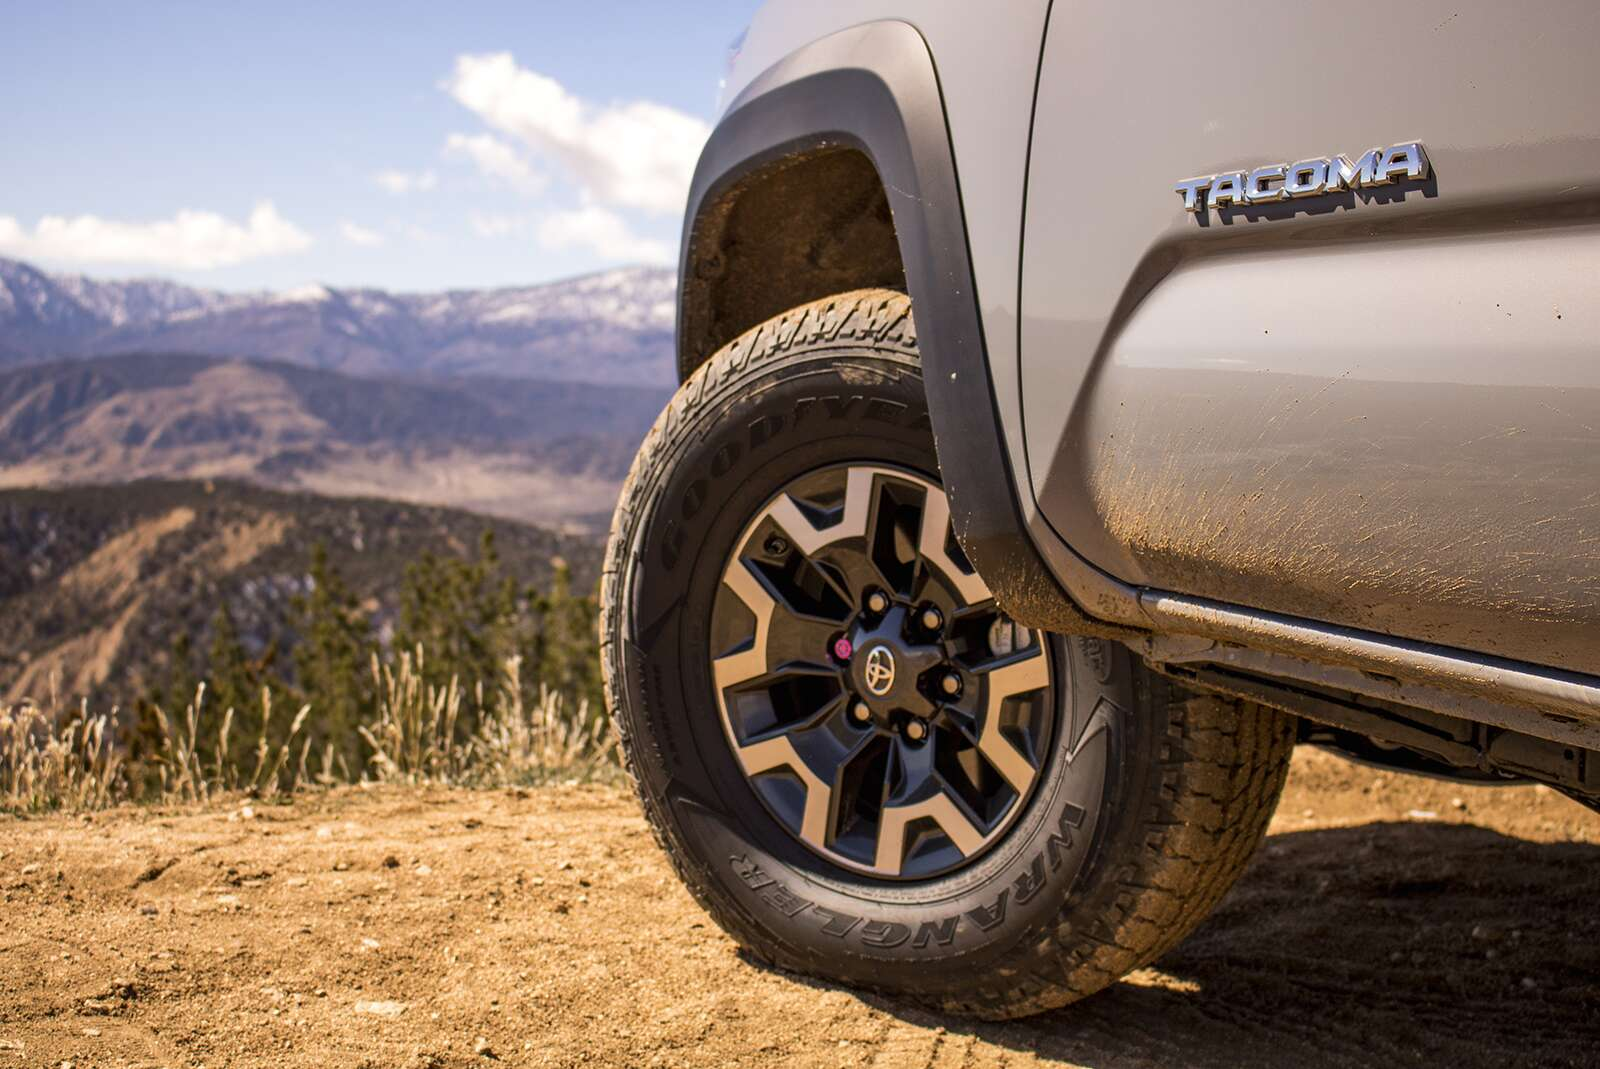 2018 Toyota Tacoma Trd Off Road Review An Apocalypse Proof Pickup Power Window Wiring Schematic Kyle Cheromcha